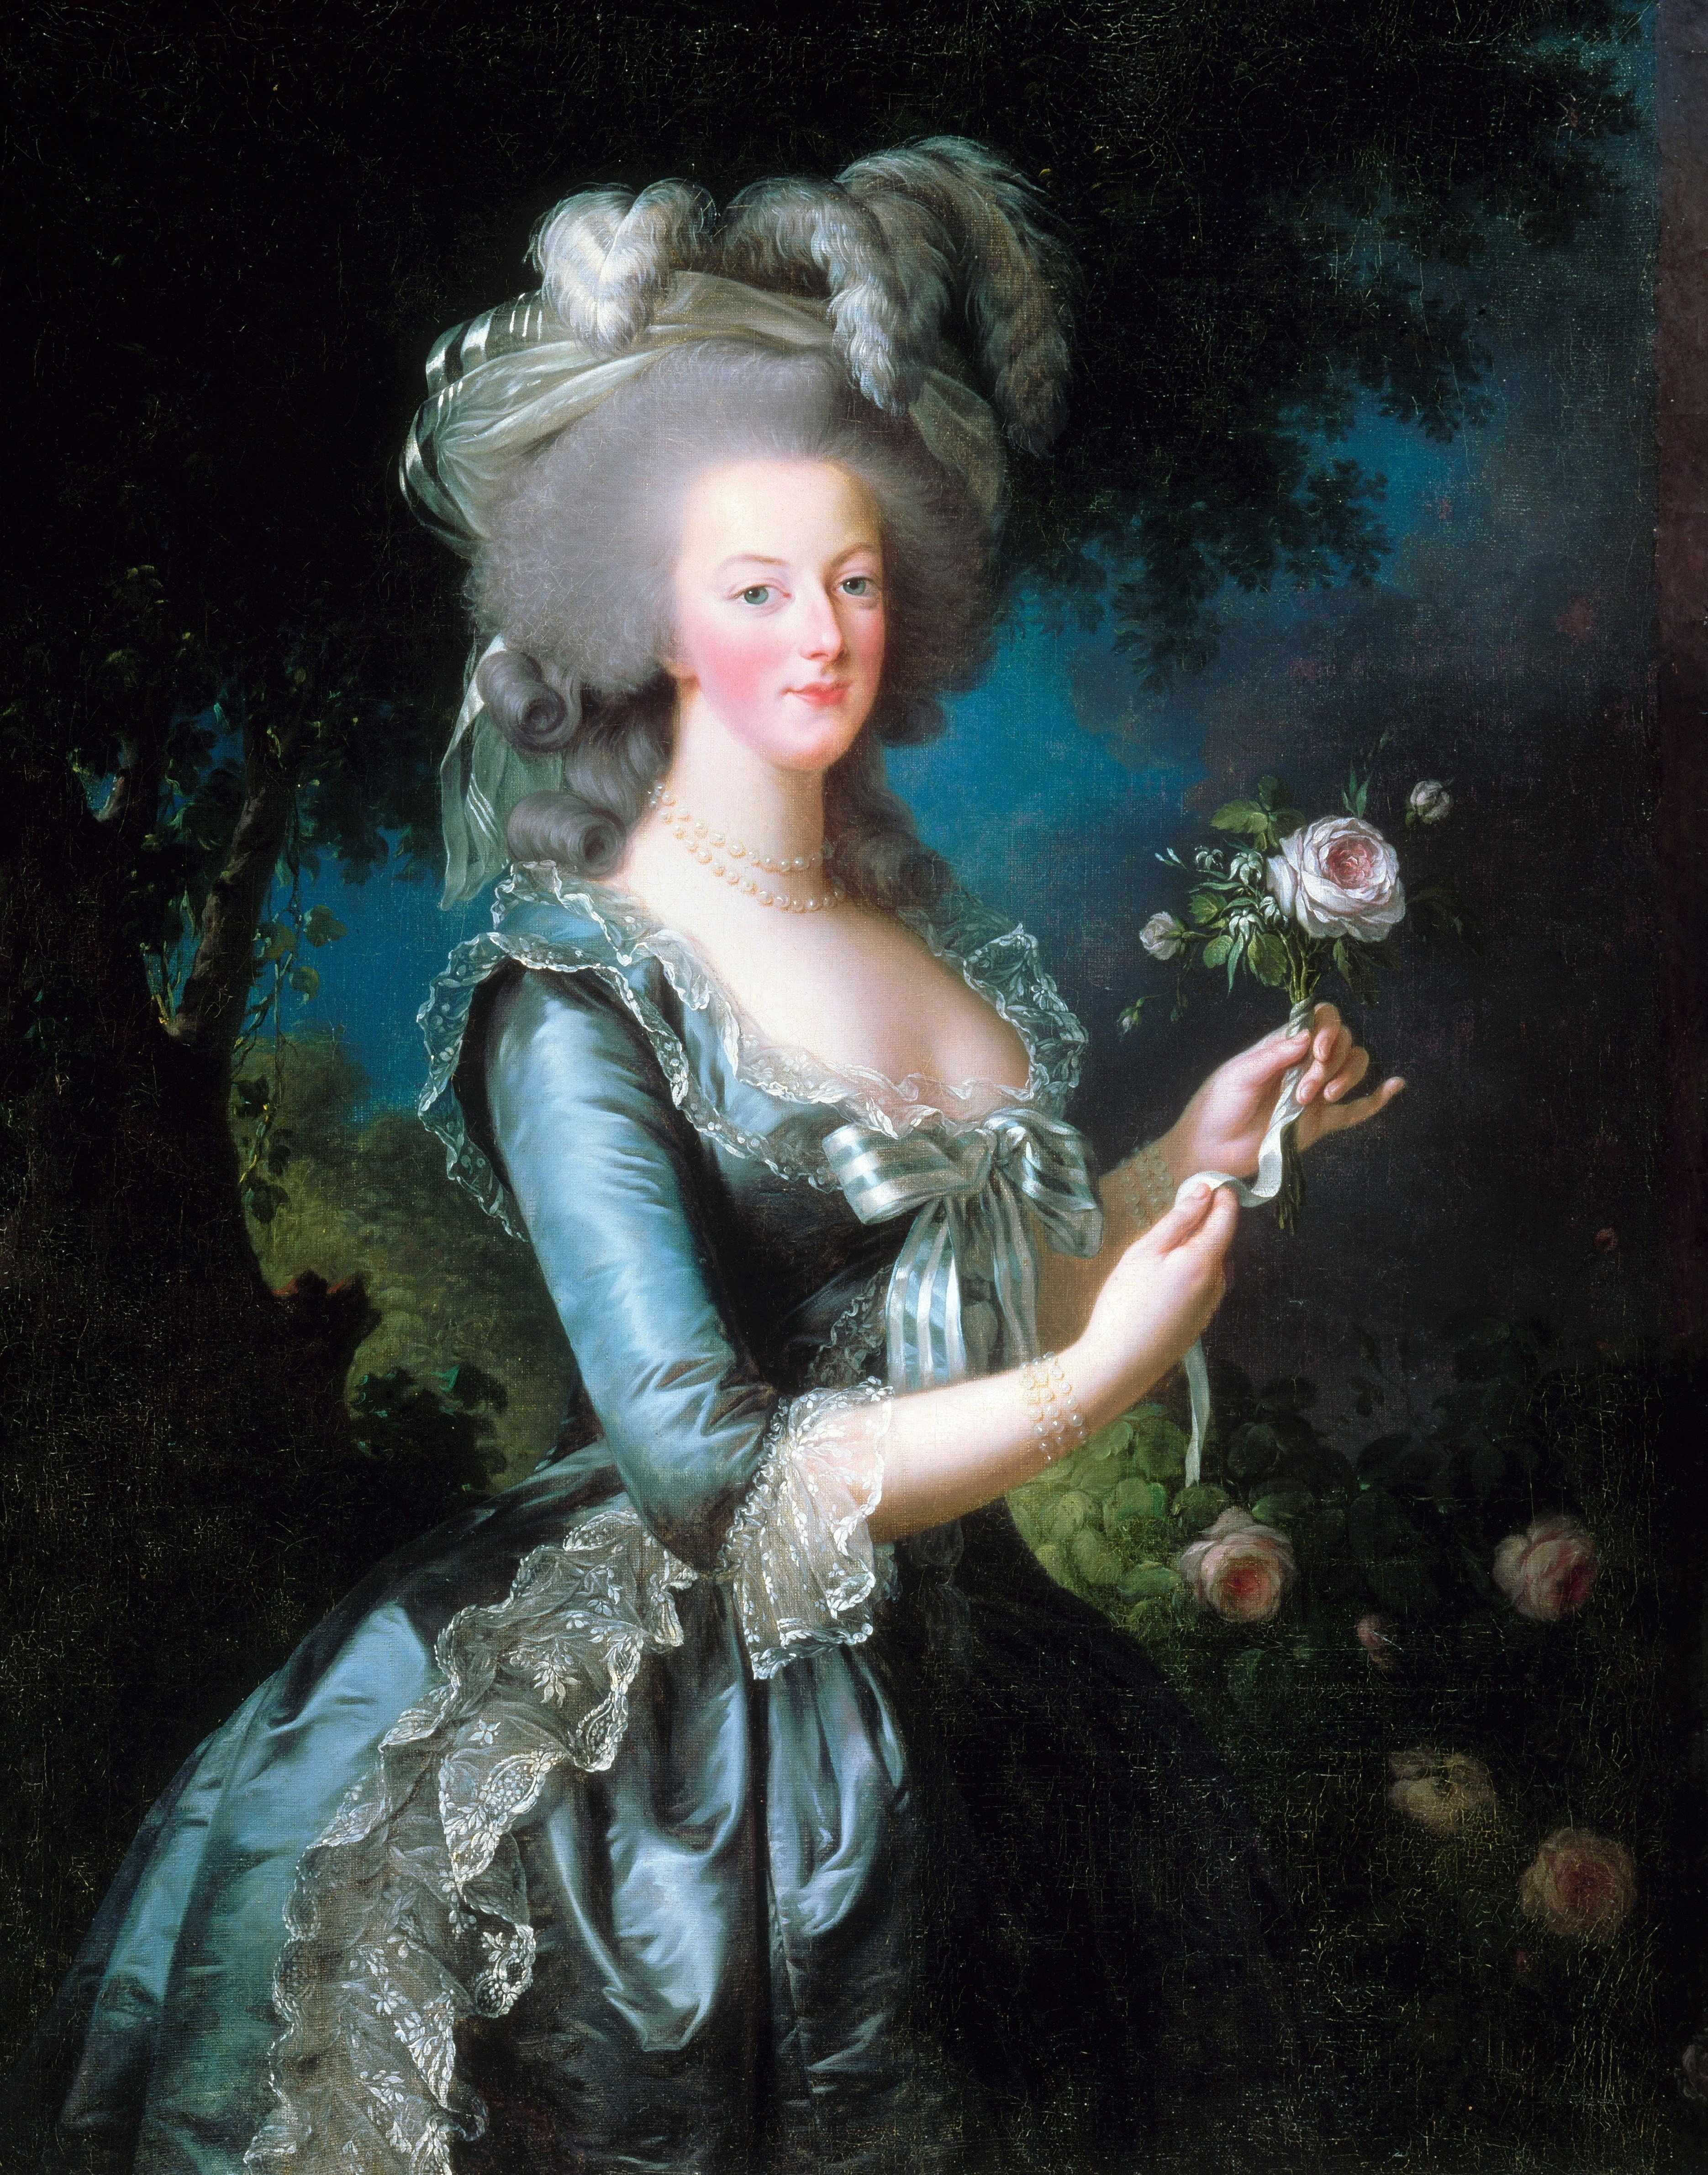 A portrait of Marie Antoinette dated 1783 and painted by Vigée-Le Brun. (Photo by Universal History Archive/UIG via Getty Images)